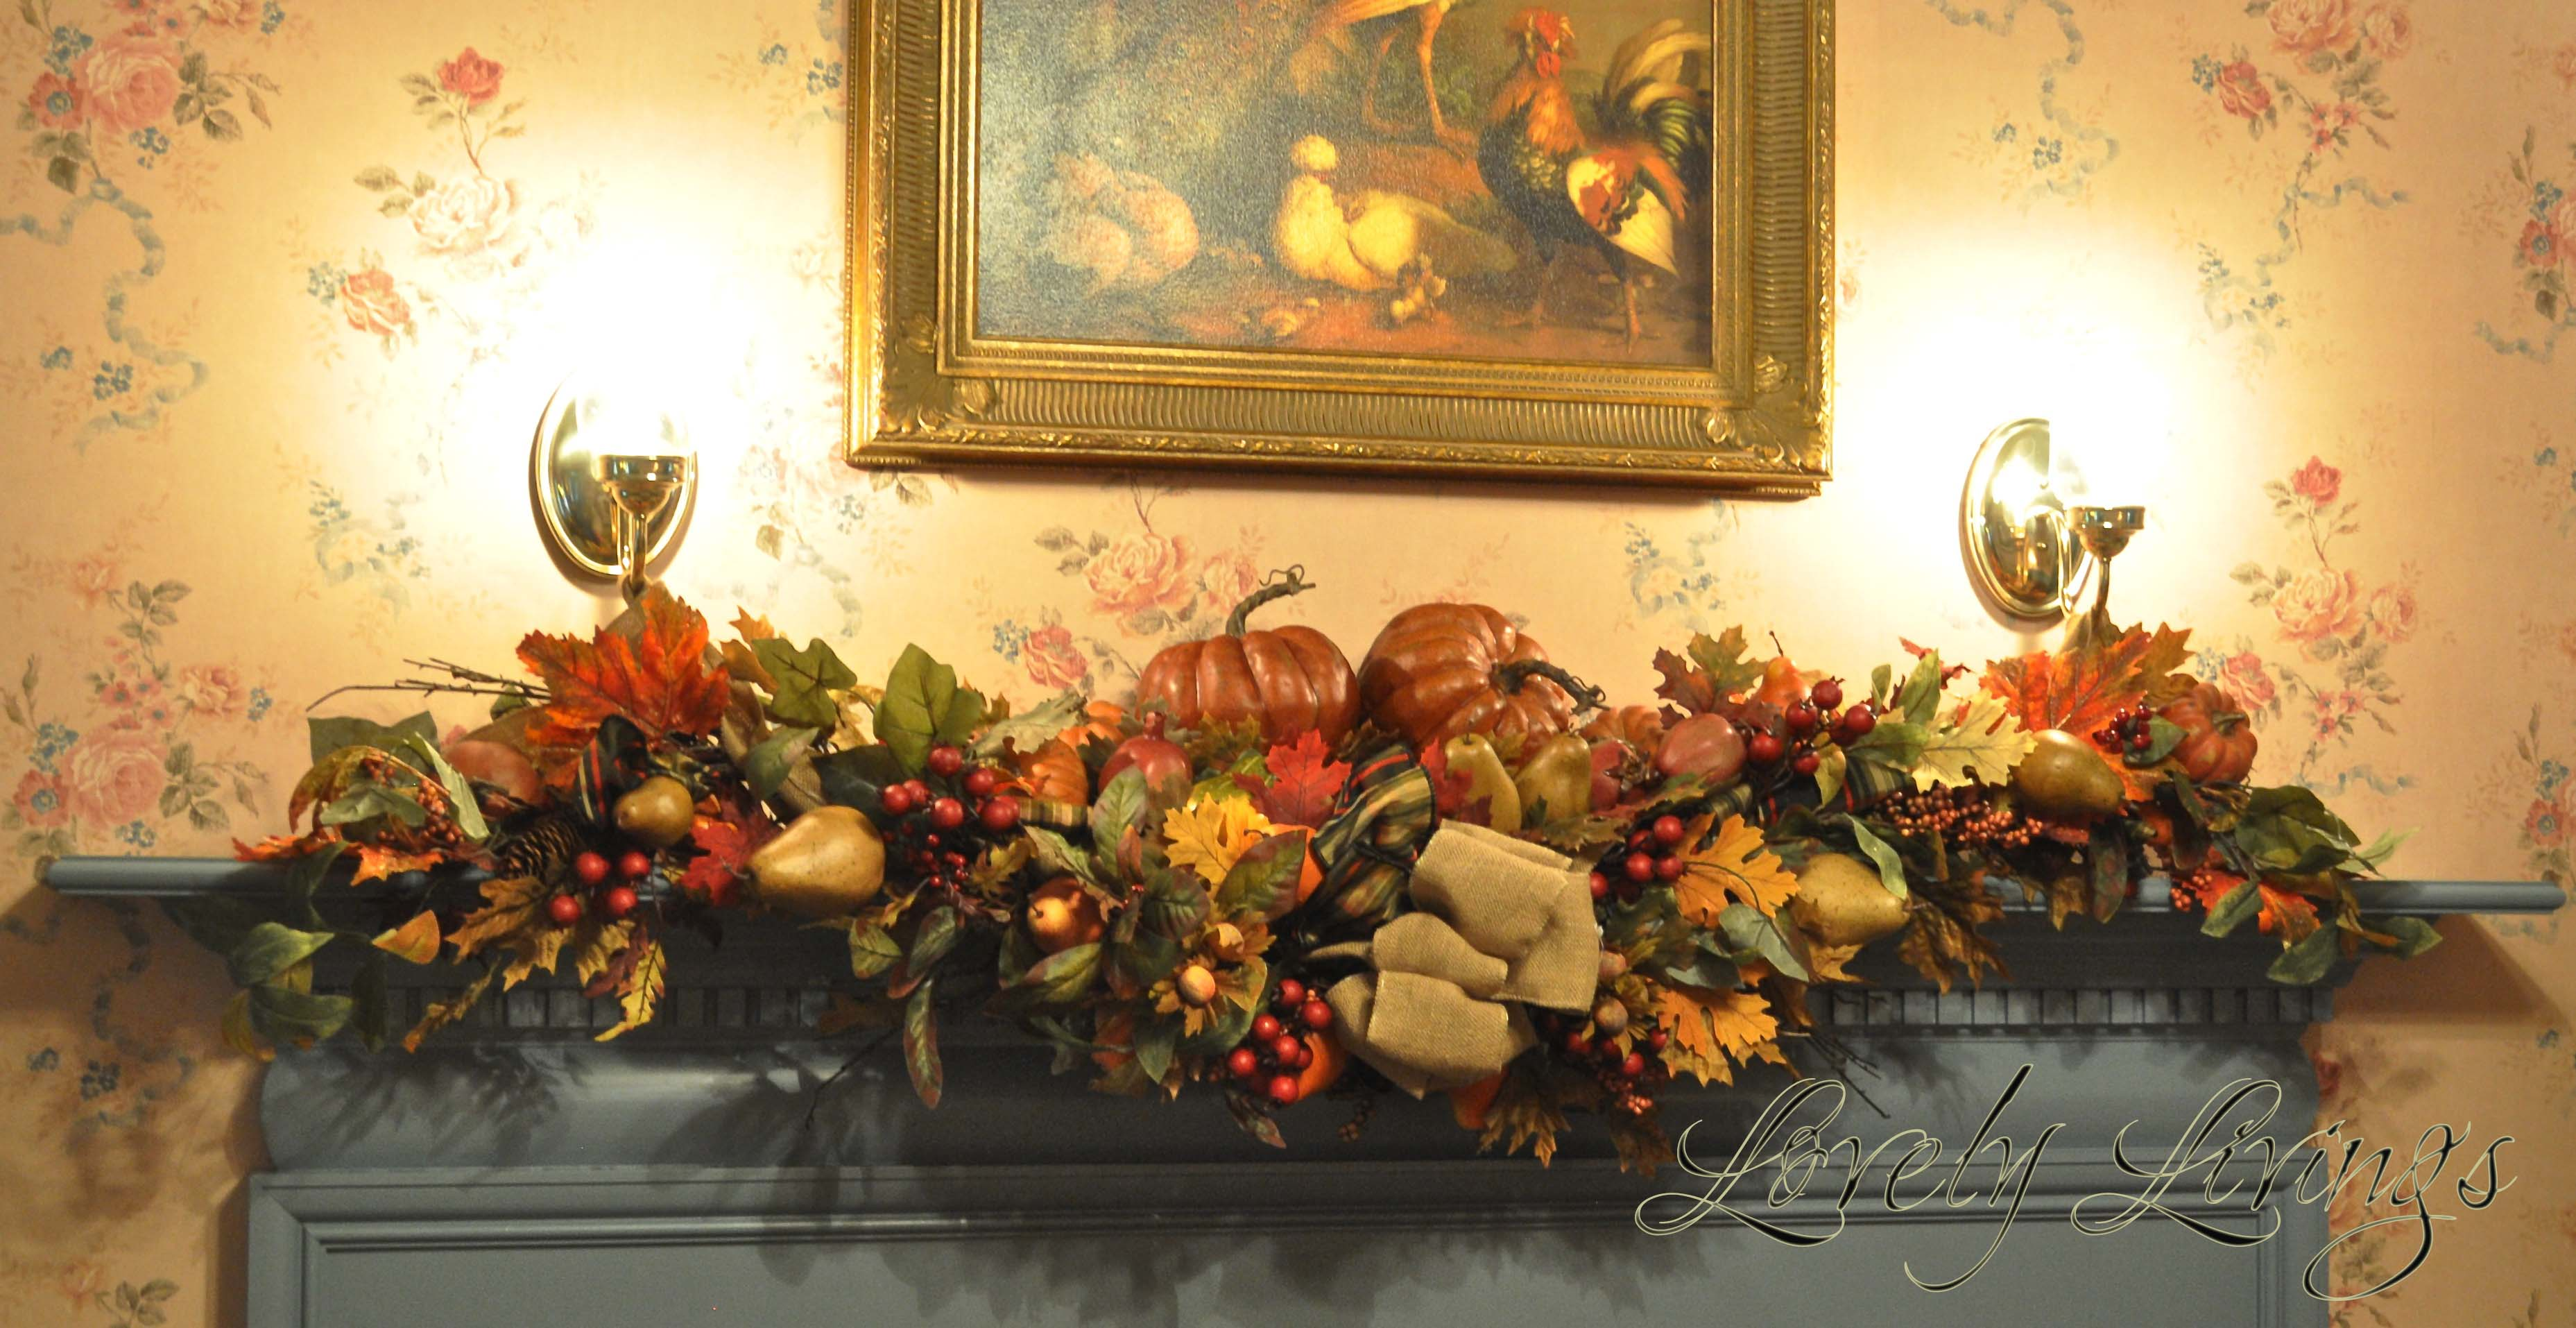 fall mantle arrangement photography - photo #47